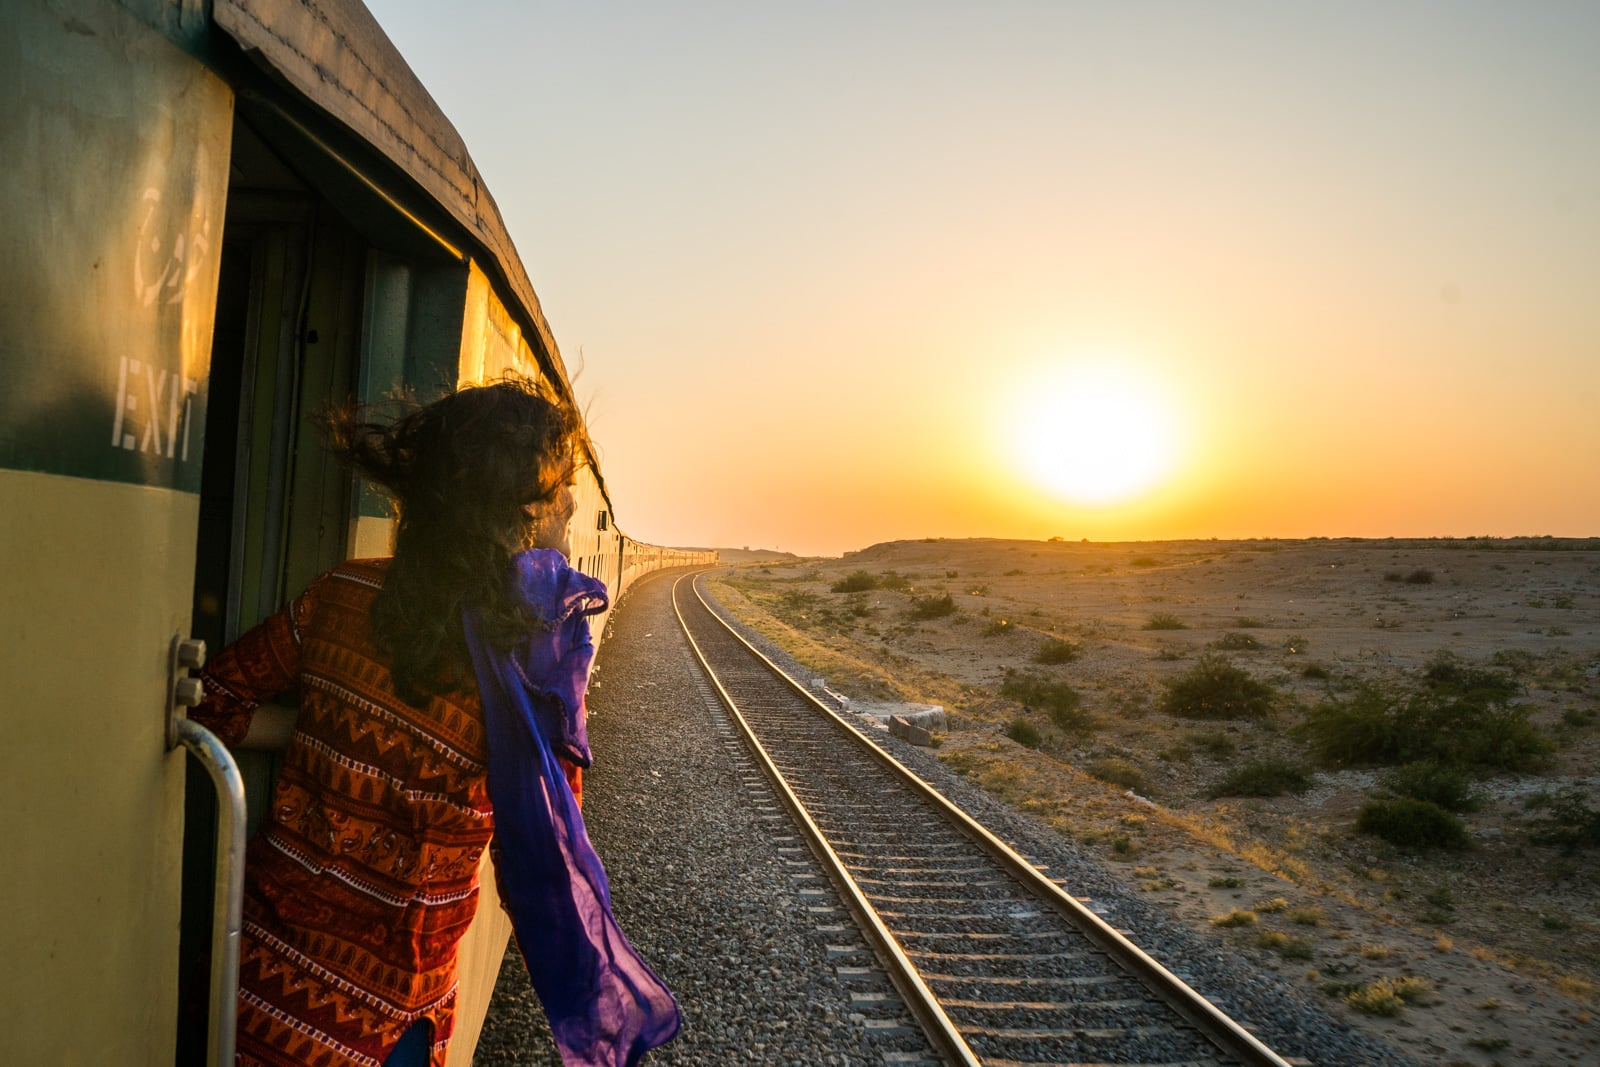 First timer's guide to train travel in Pakistan - Lost With Purpose travel blog